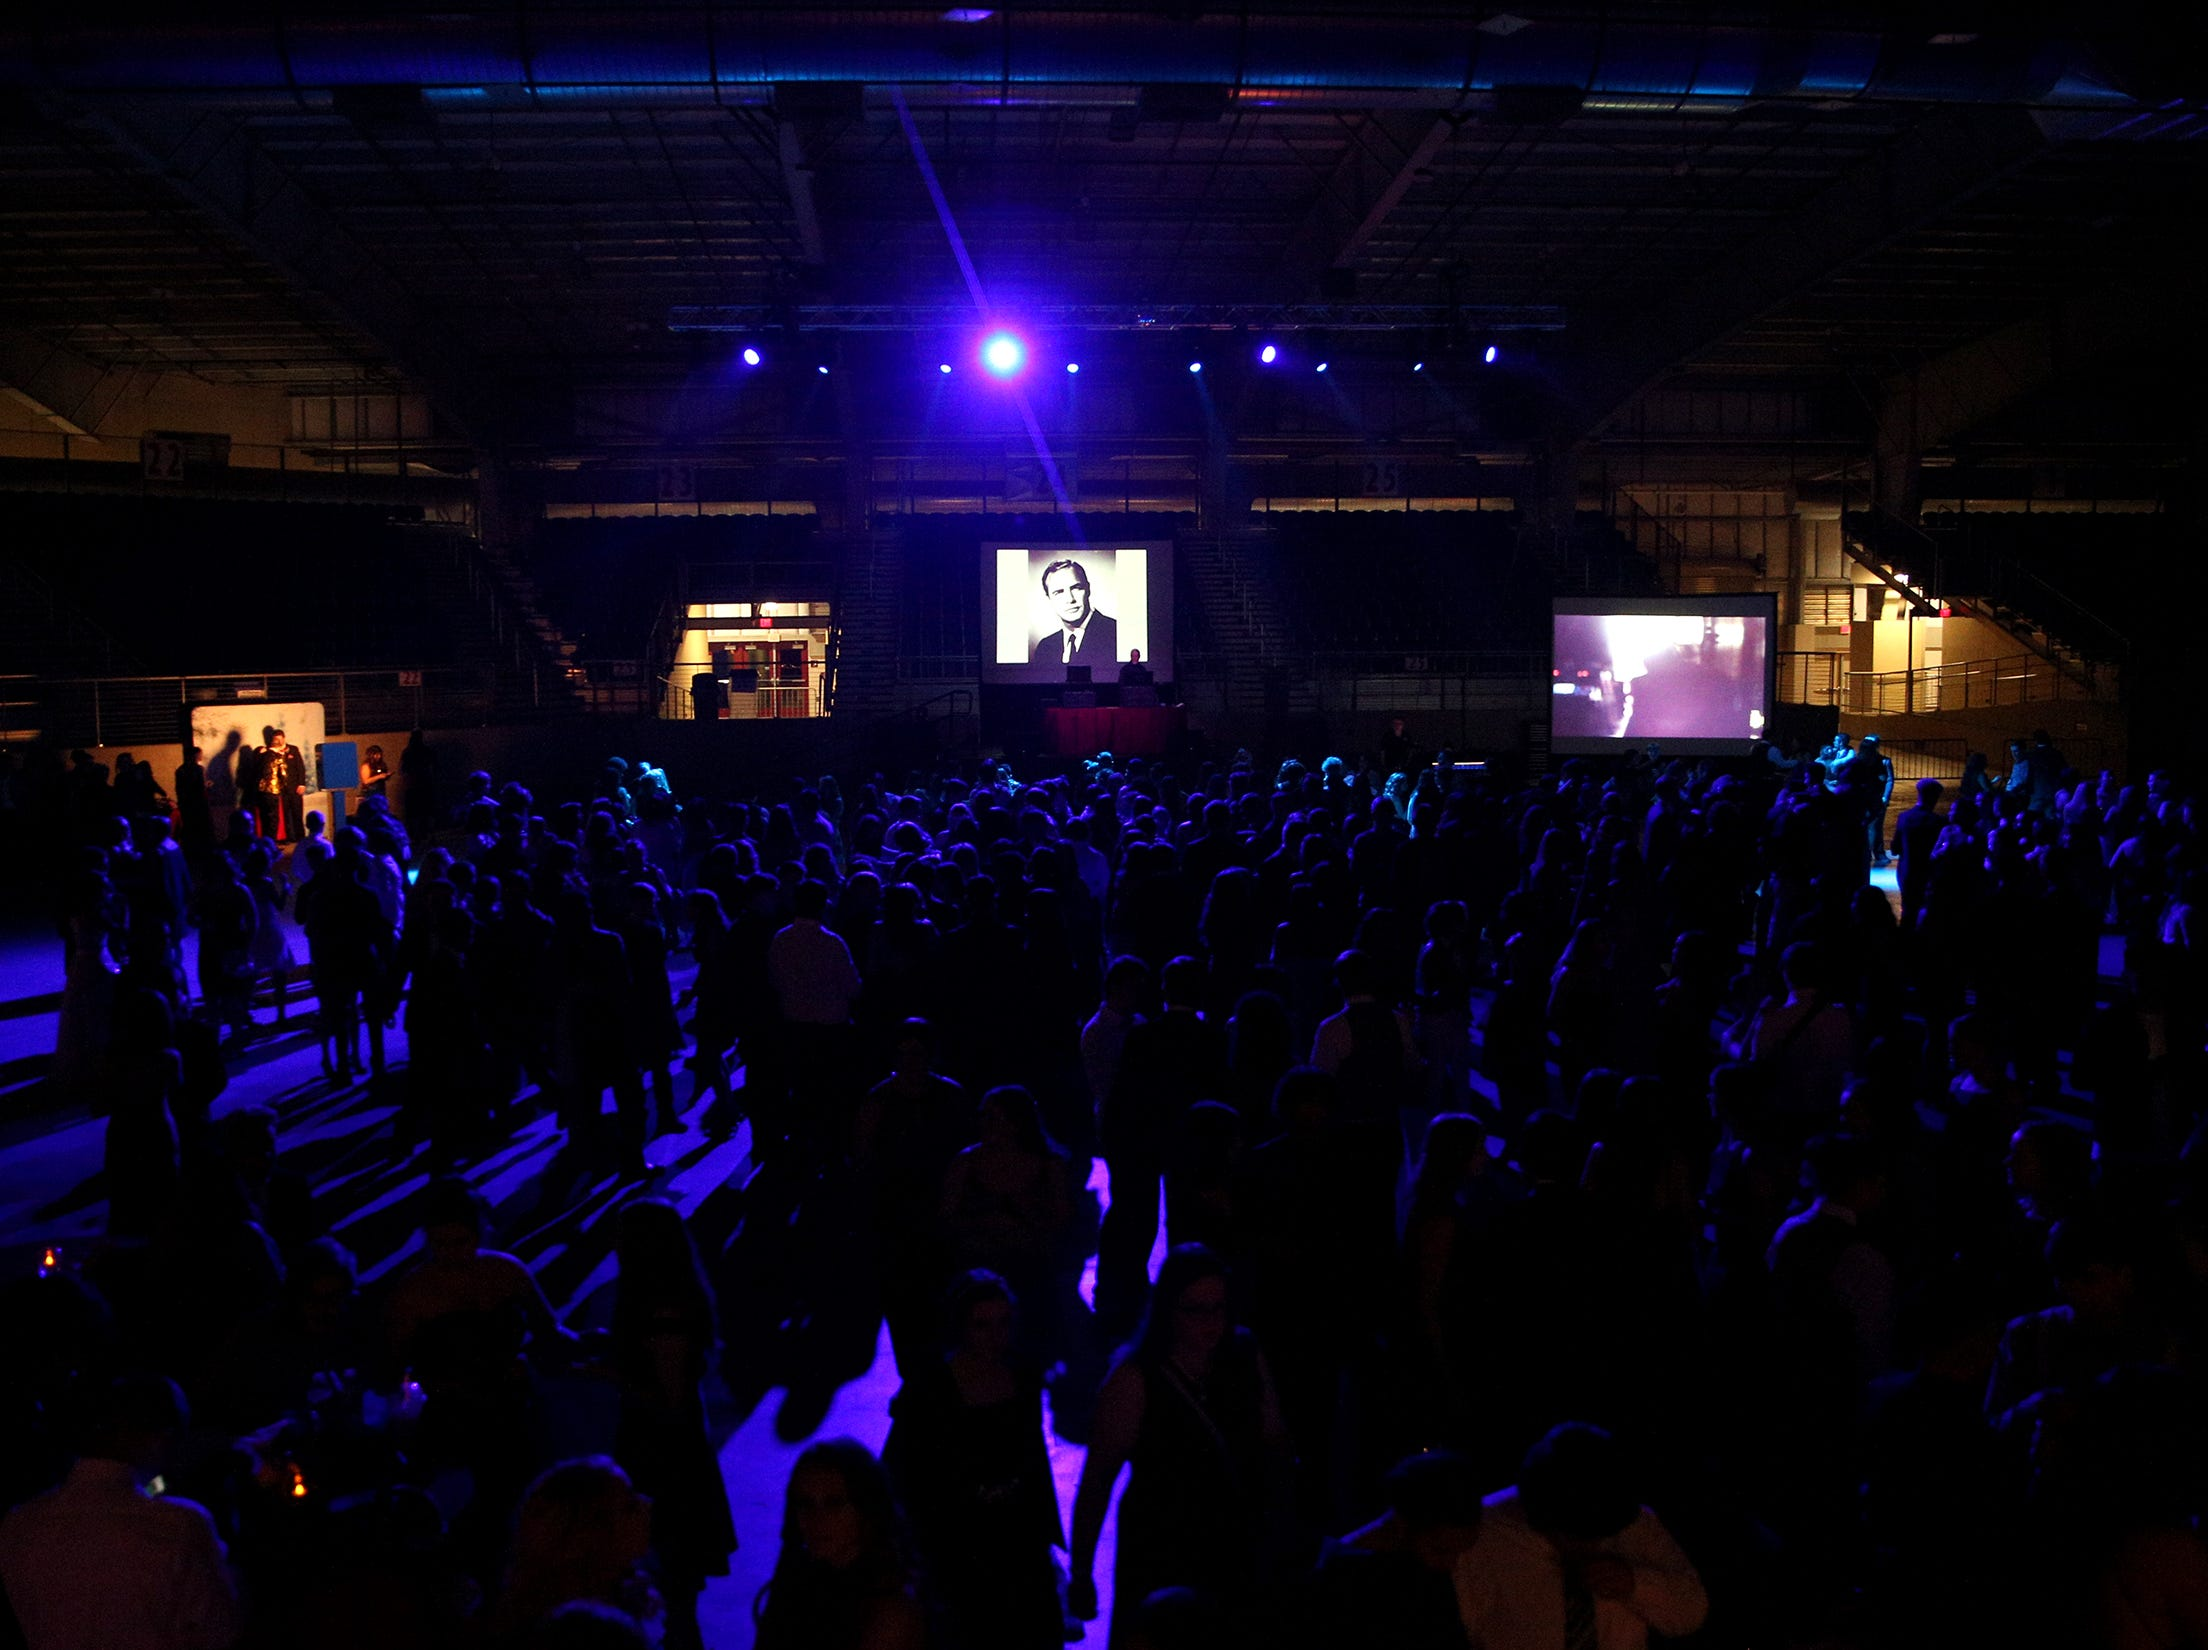 Students attend the 65th annual SnoBall at the Oregon State Fairgrounds Pavilion in Salem on Saturday, Dec. 1, 2018. Typically 1,000-2,000 students attend the event.